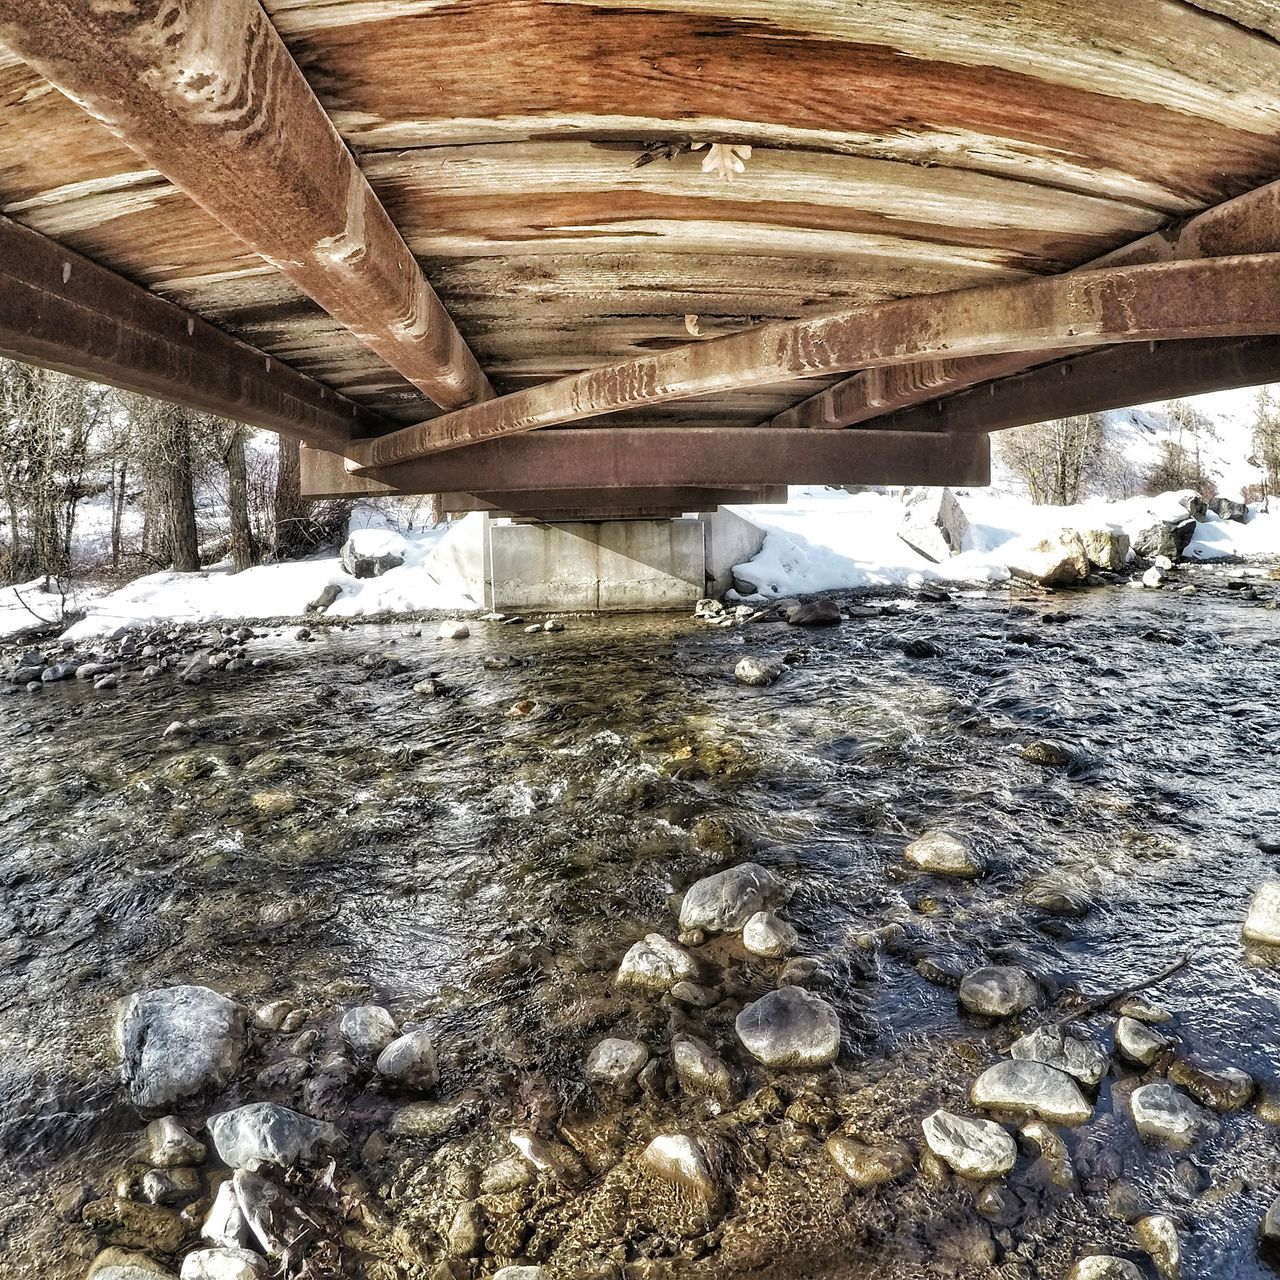 Under a bridge No People High Angle View Day Sunlight Outdoors Close-up Full Frame Nature Wet Bridge Water Goprohero5black Bridge - Man Made Structure